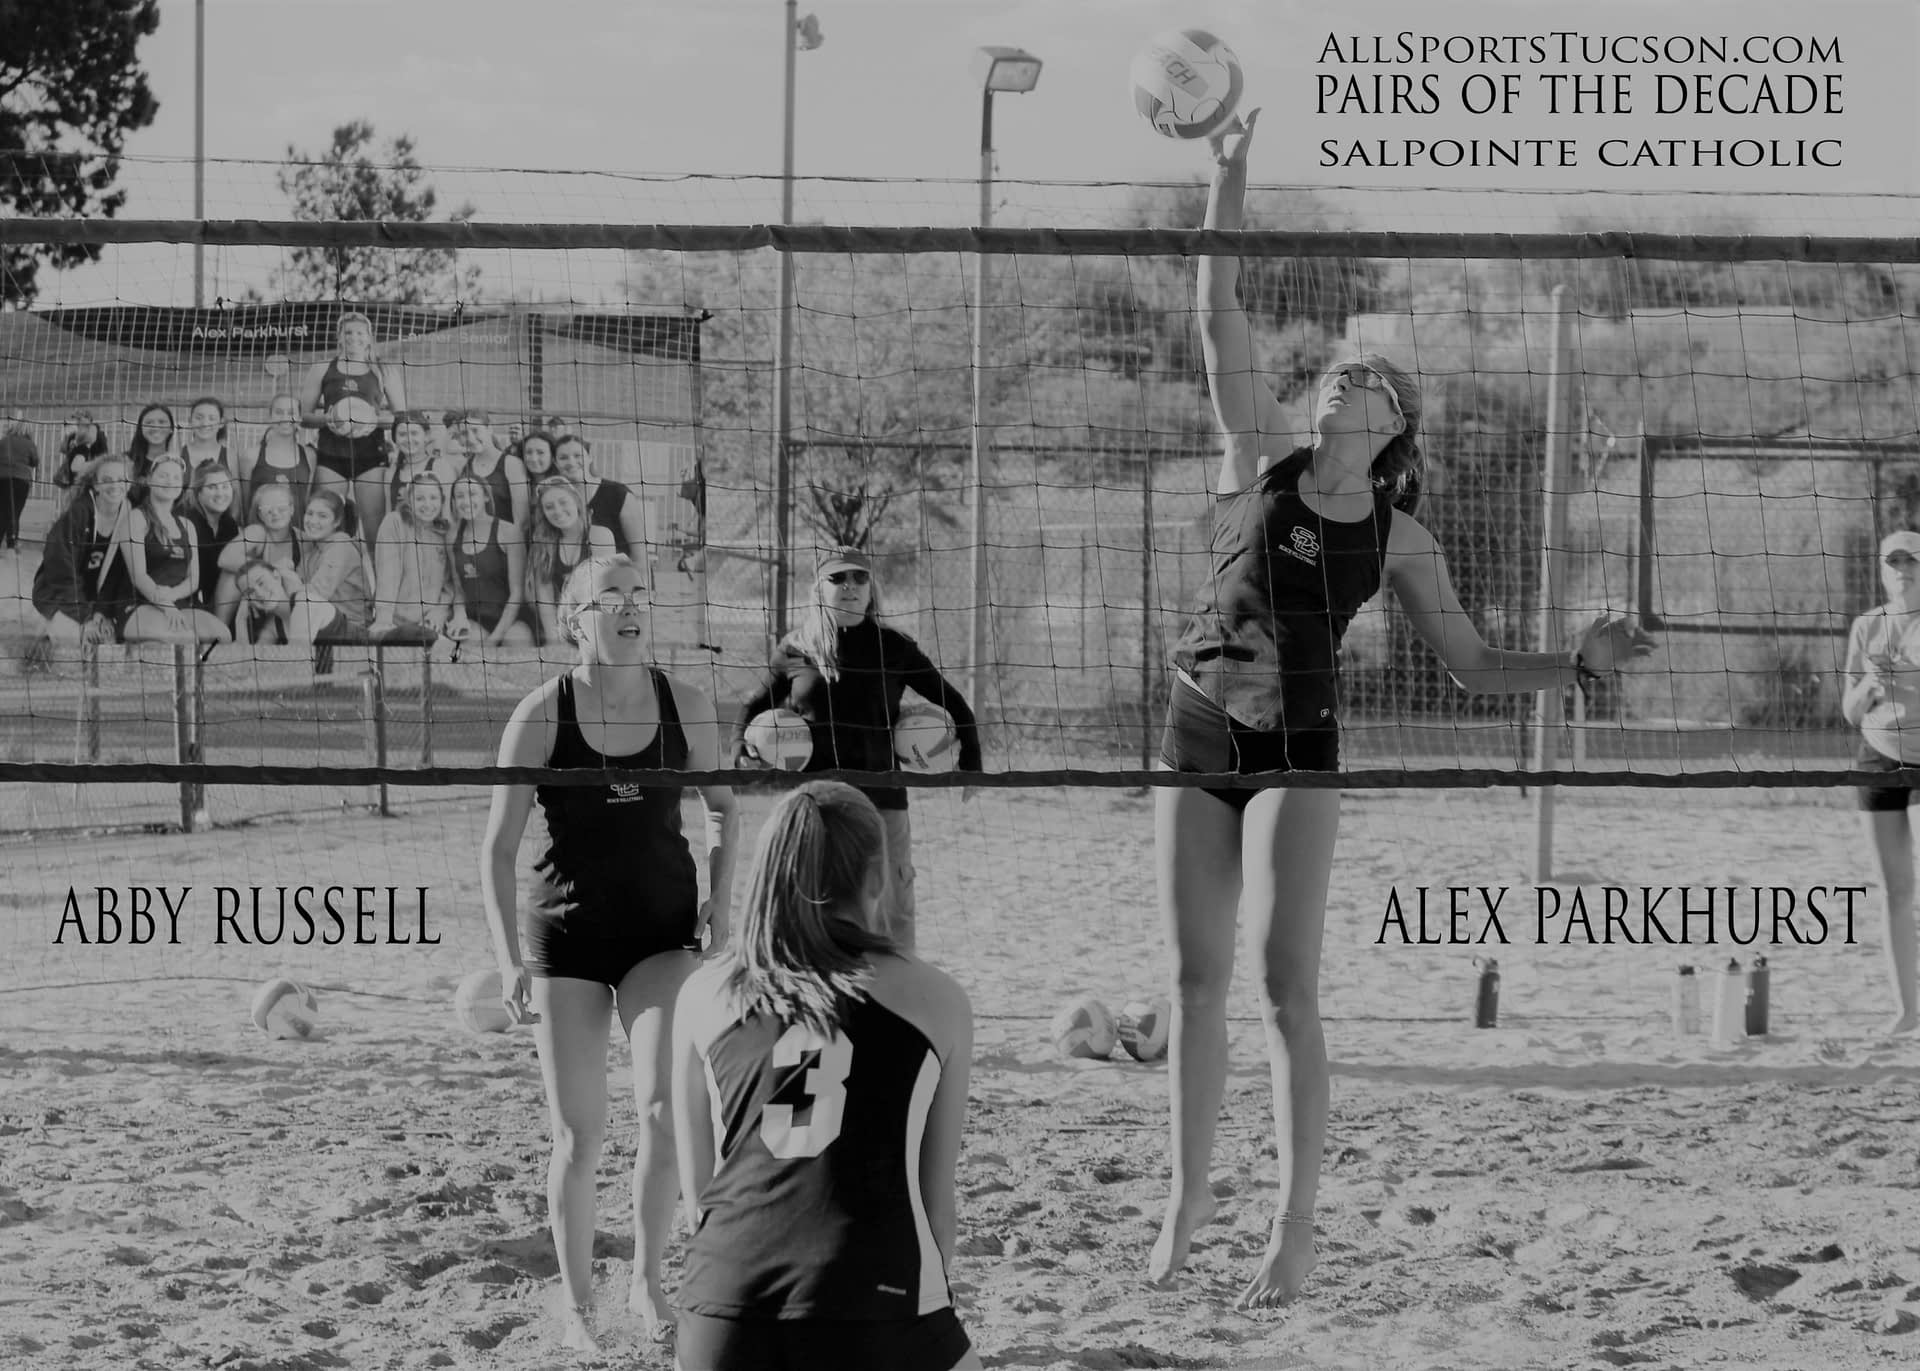 abby-russell-alex-parkhurst-pairs-decade